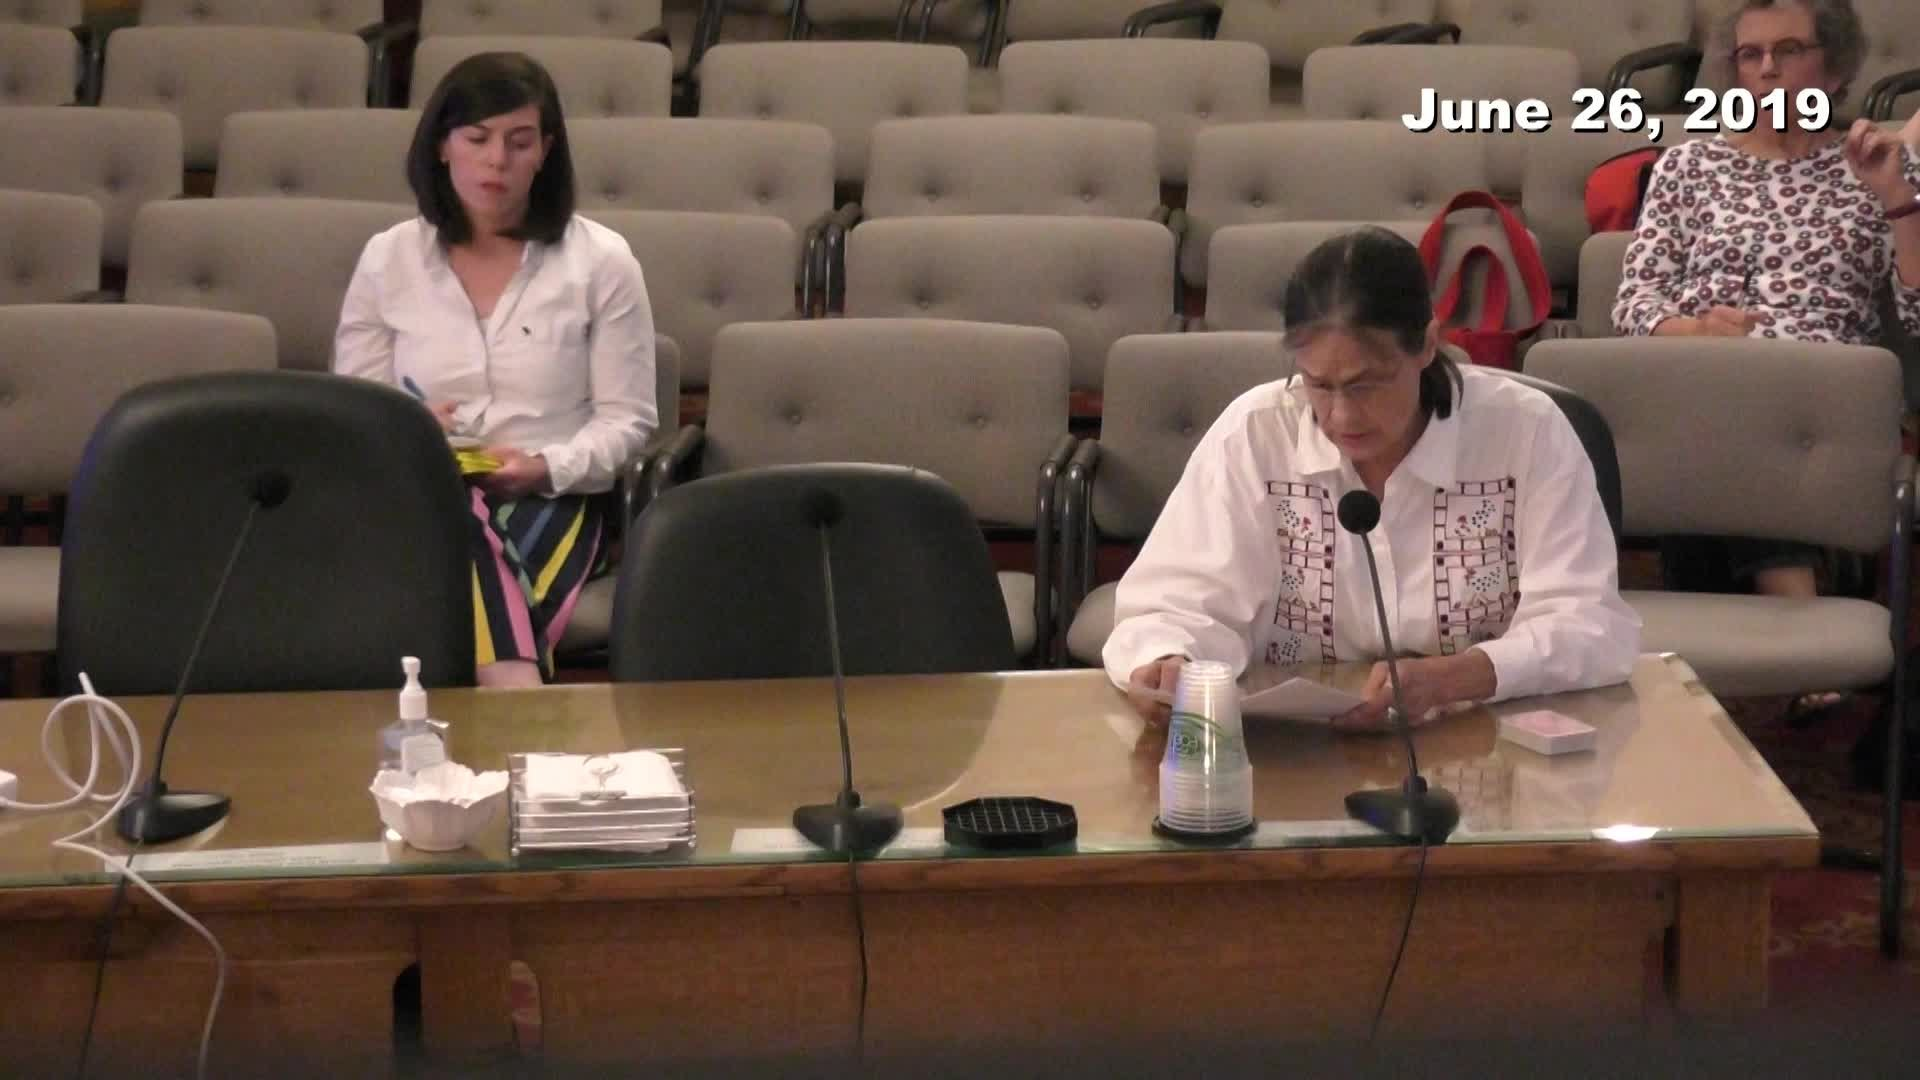 Planning Commission Meeting - 06/26/2019